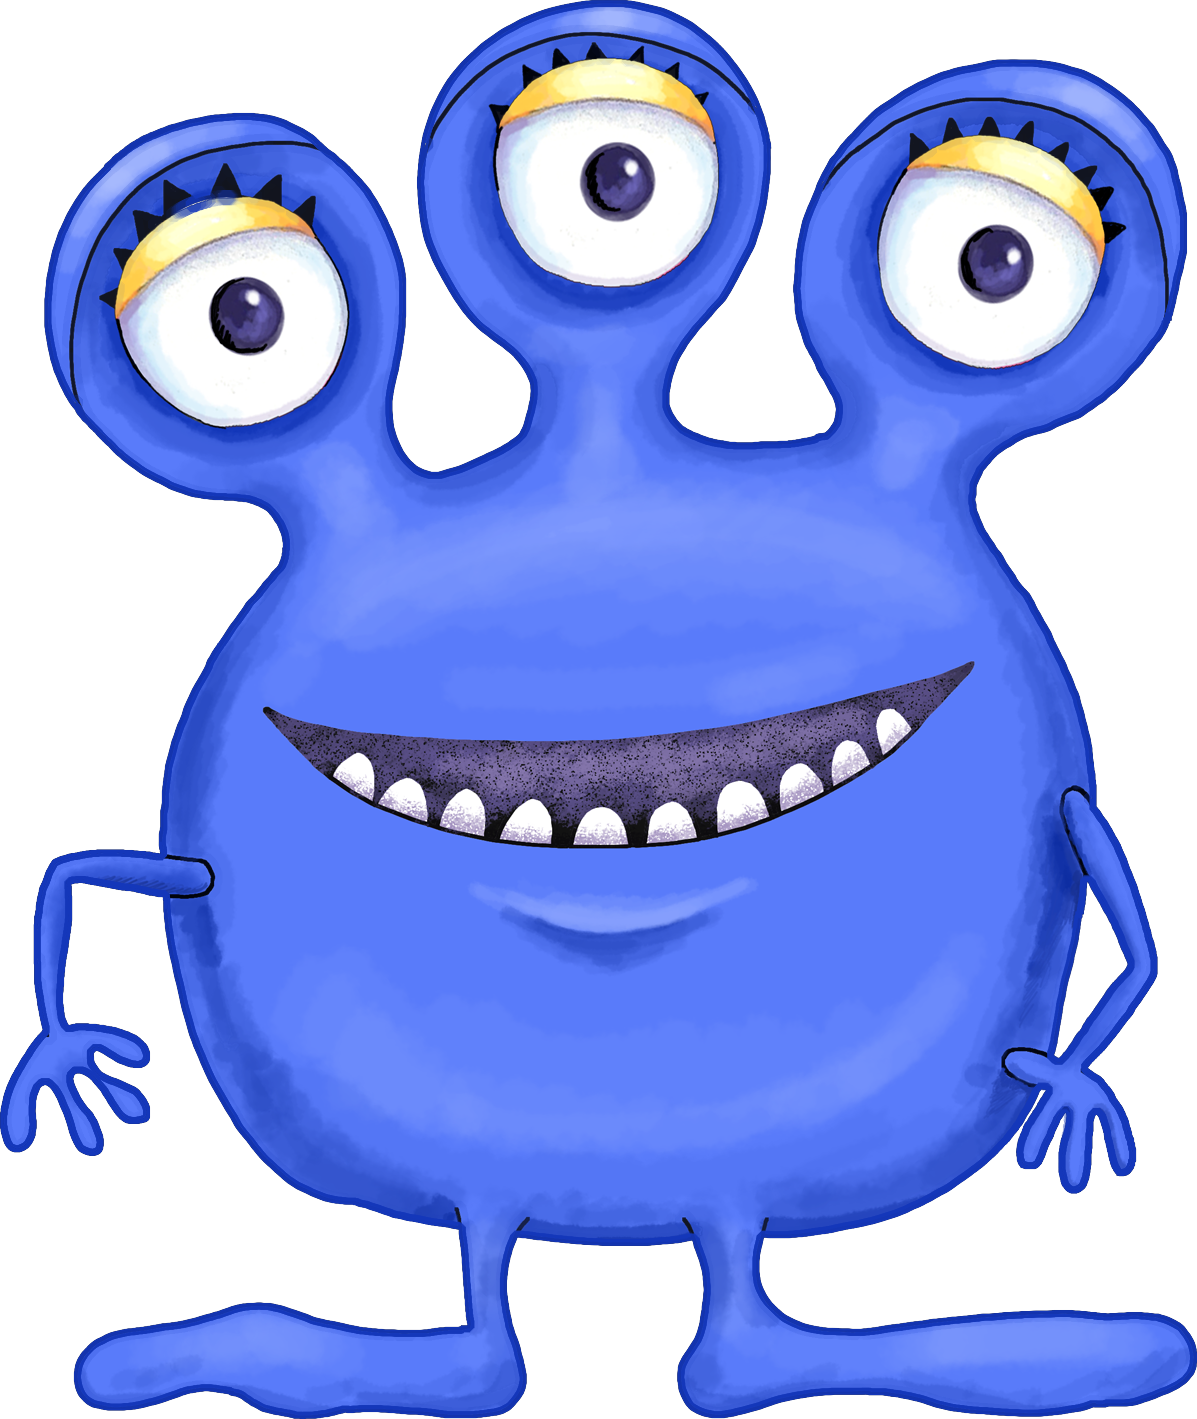 Alien with book clipart picture transparent library Your Free Art: Cute Blue, Purple and Green Cartoon Alien Monsters ... picture transparent library